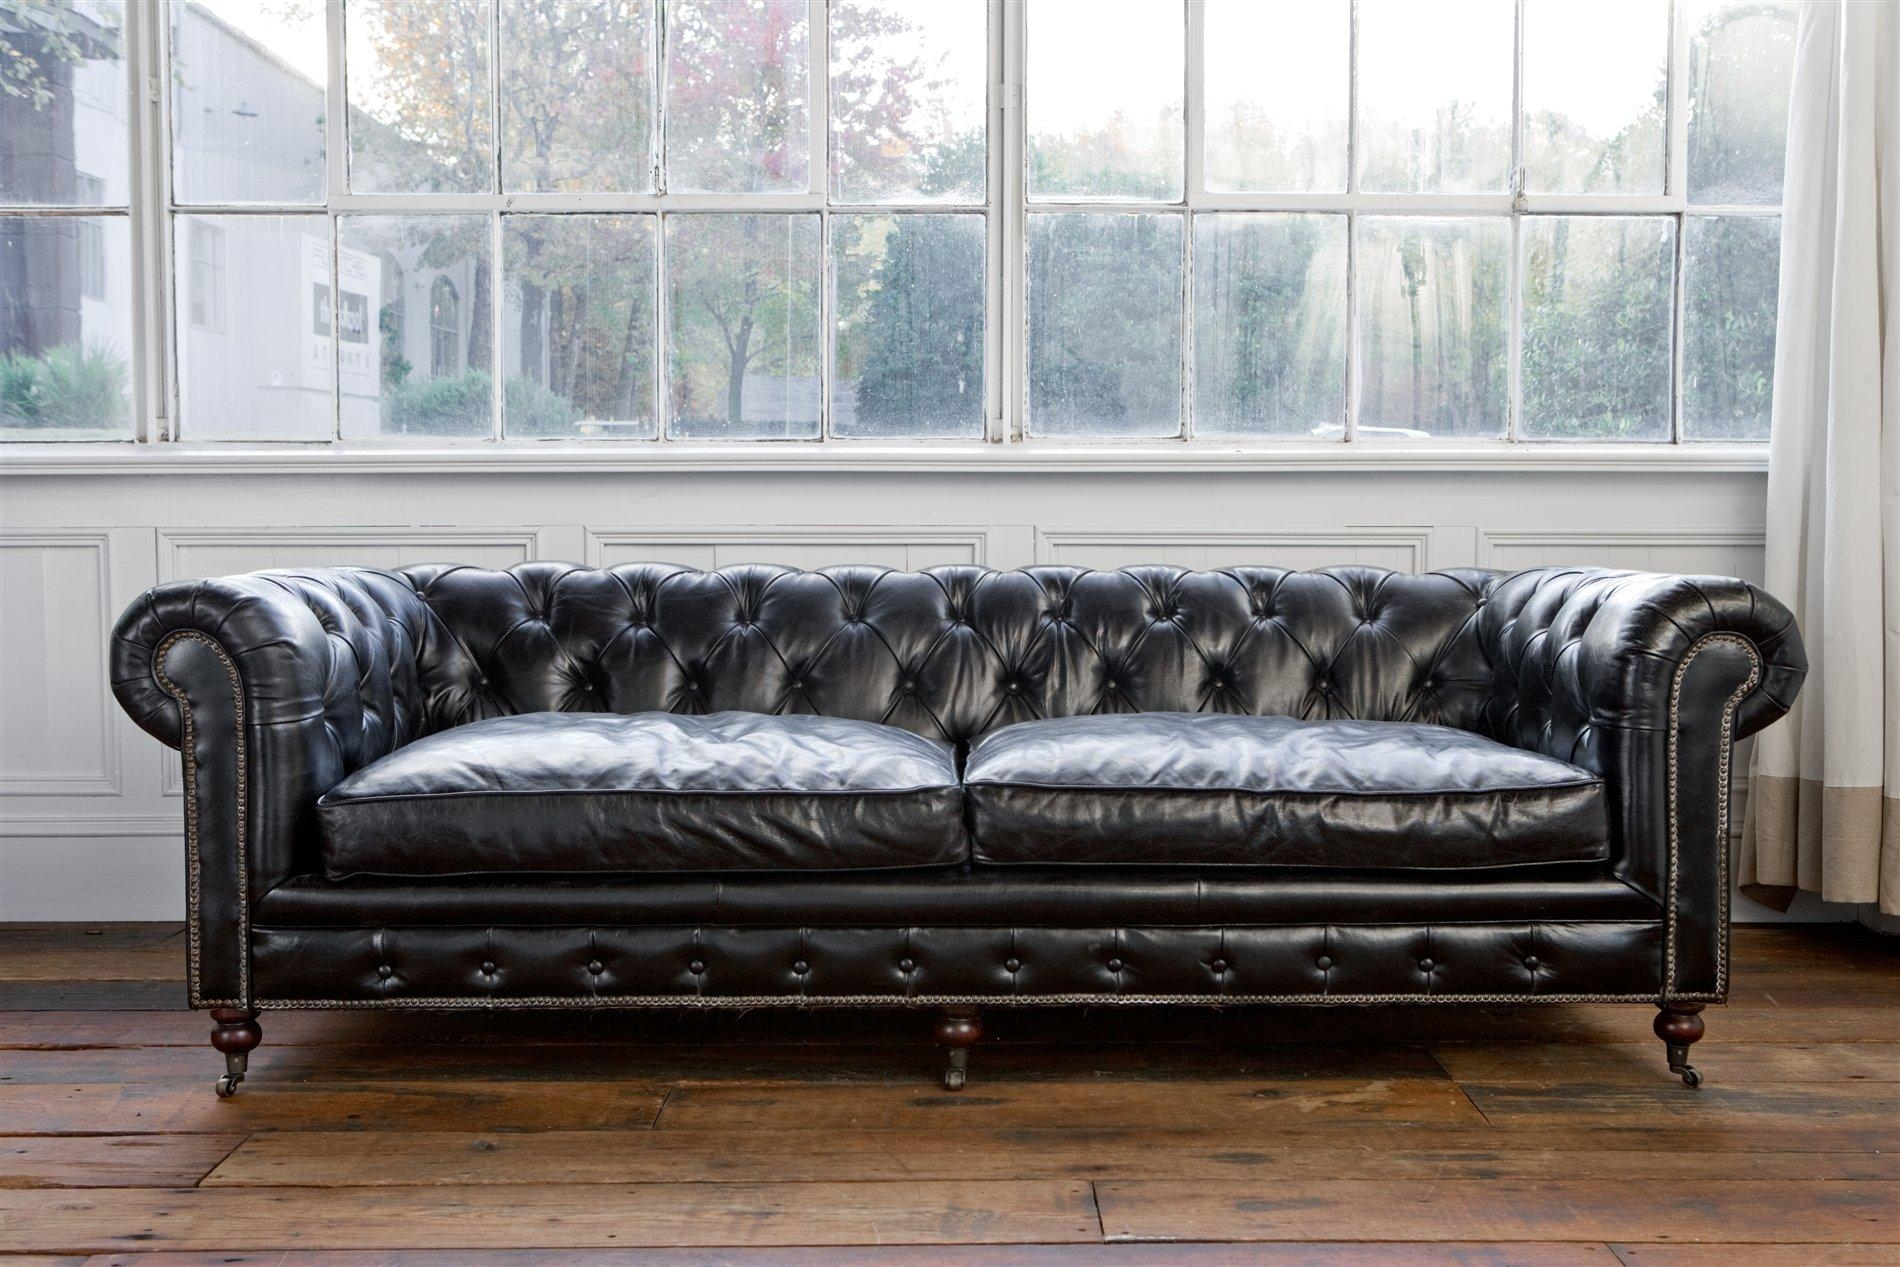 Sofas : Magnificent Black Leather Sofa L Shaped Sofa Cheap Tufted Pertaining To Chesterfield Black Sofas (Image 17 of 20)